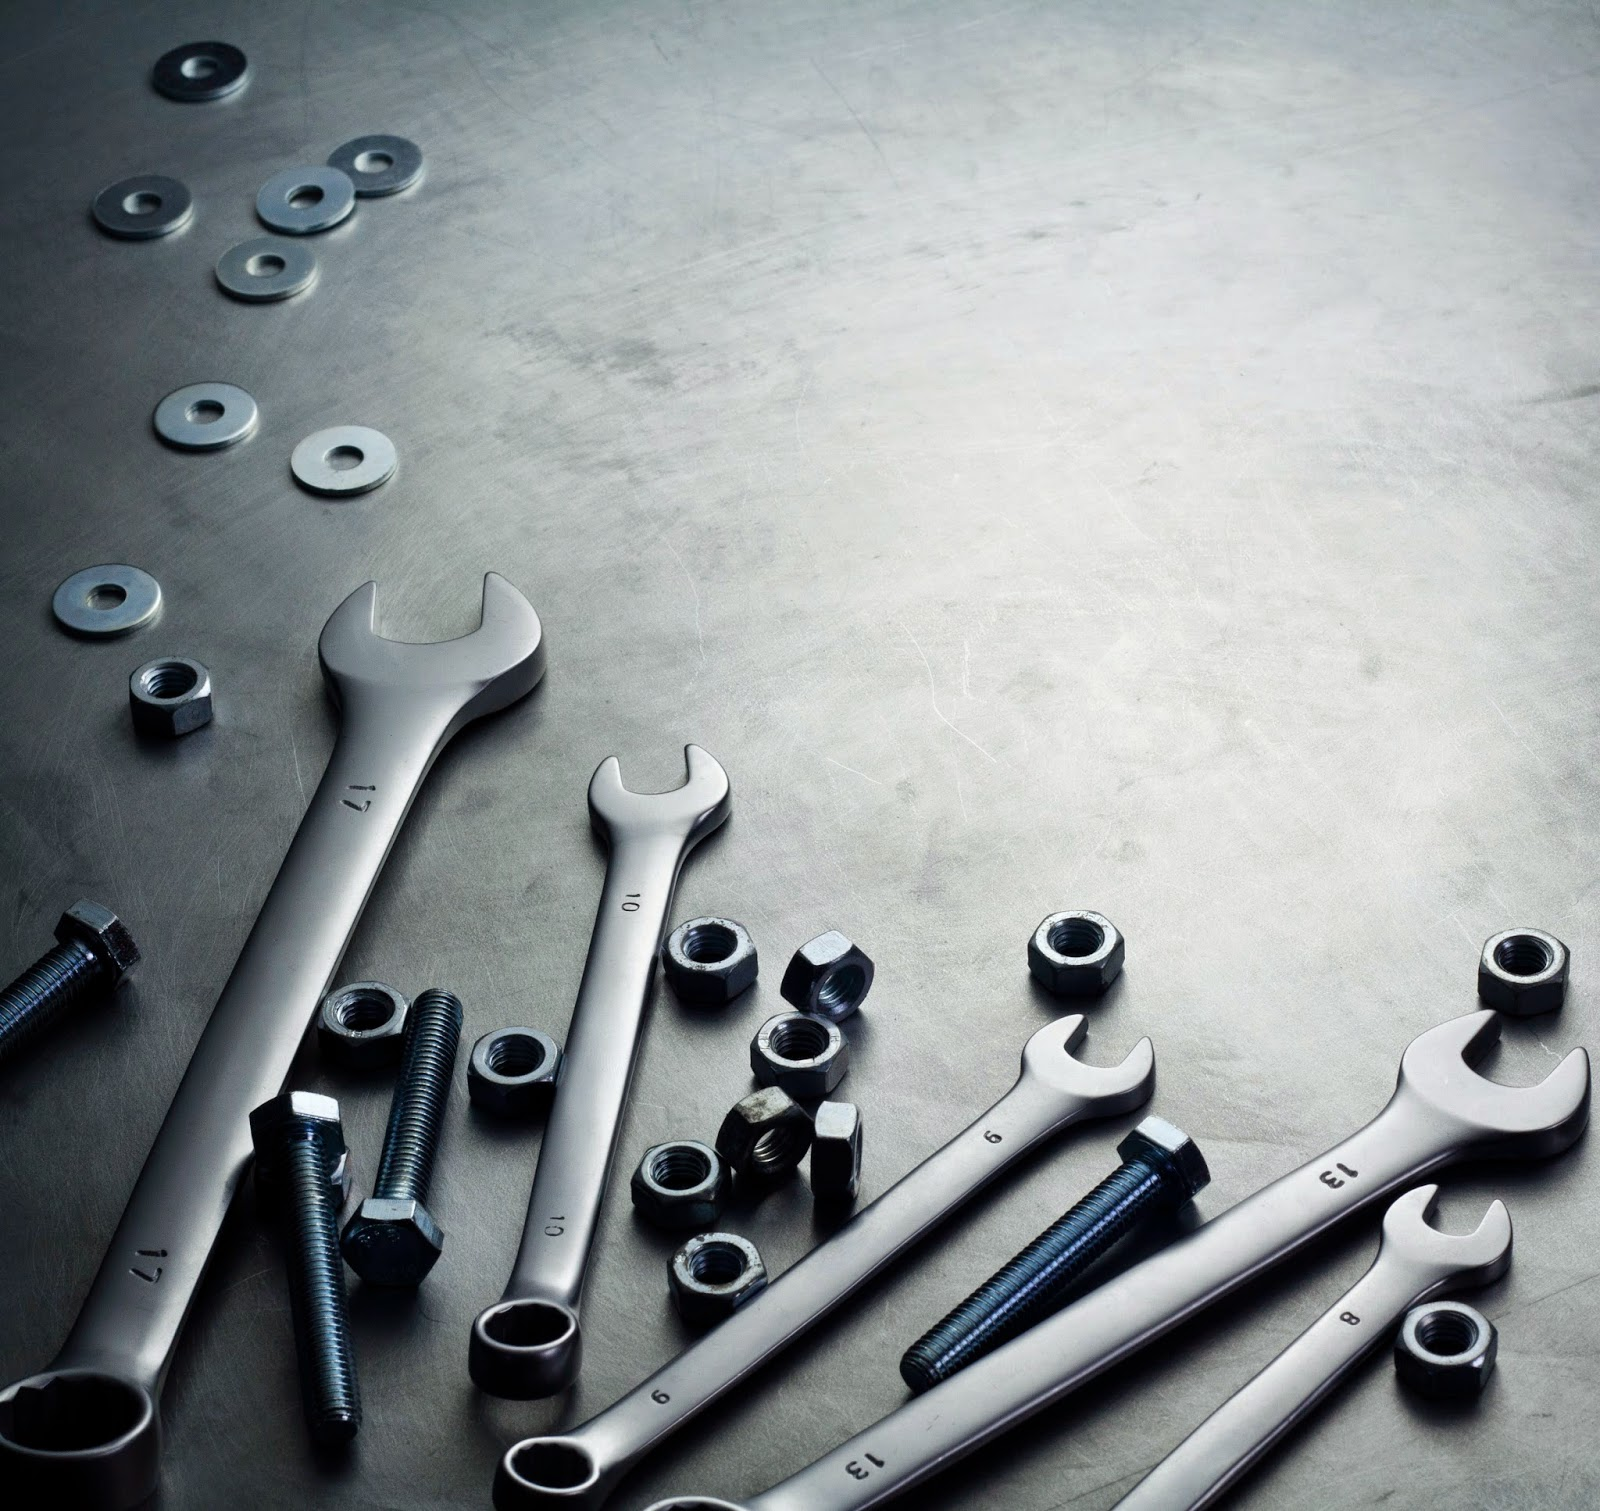 Wrenches and hardware on metal surface